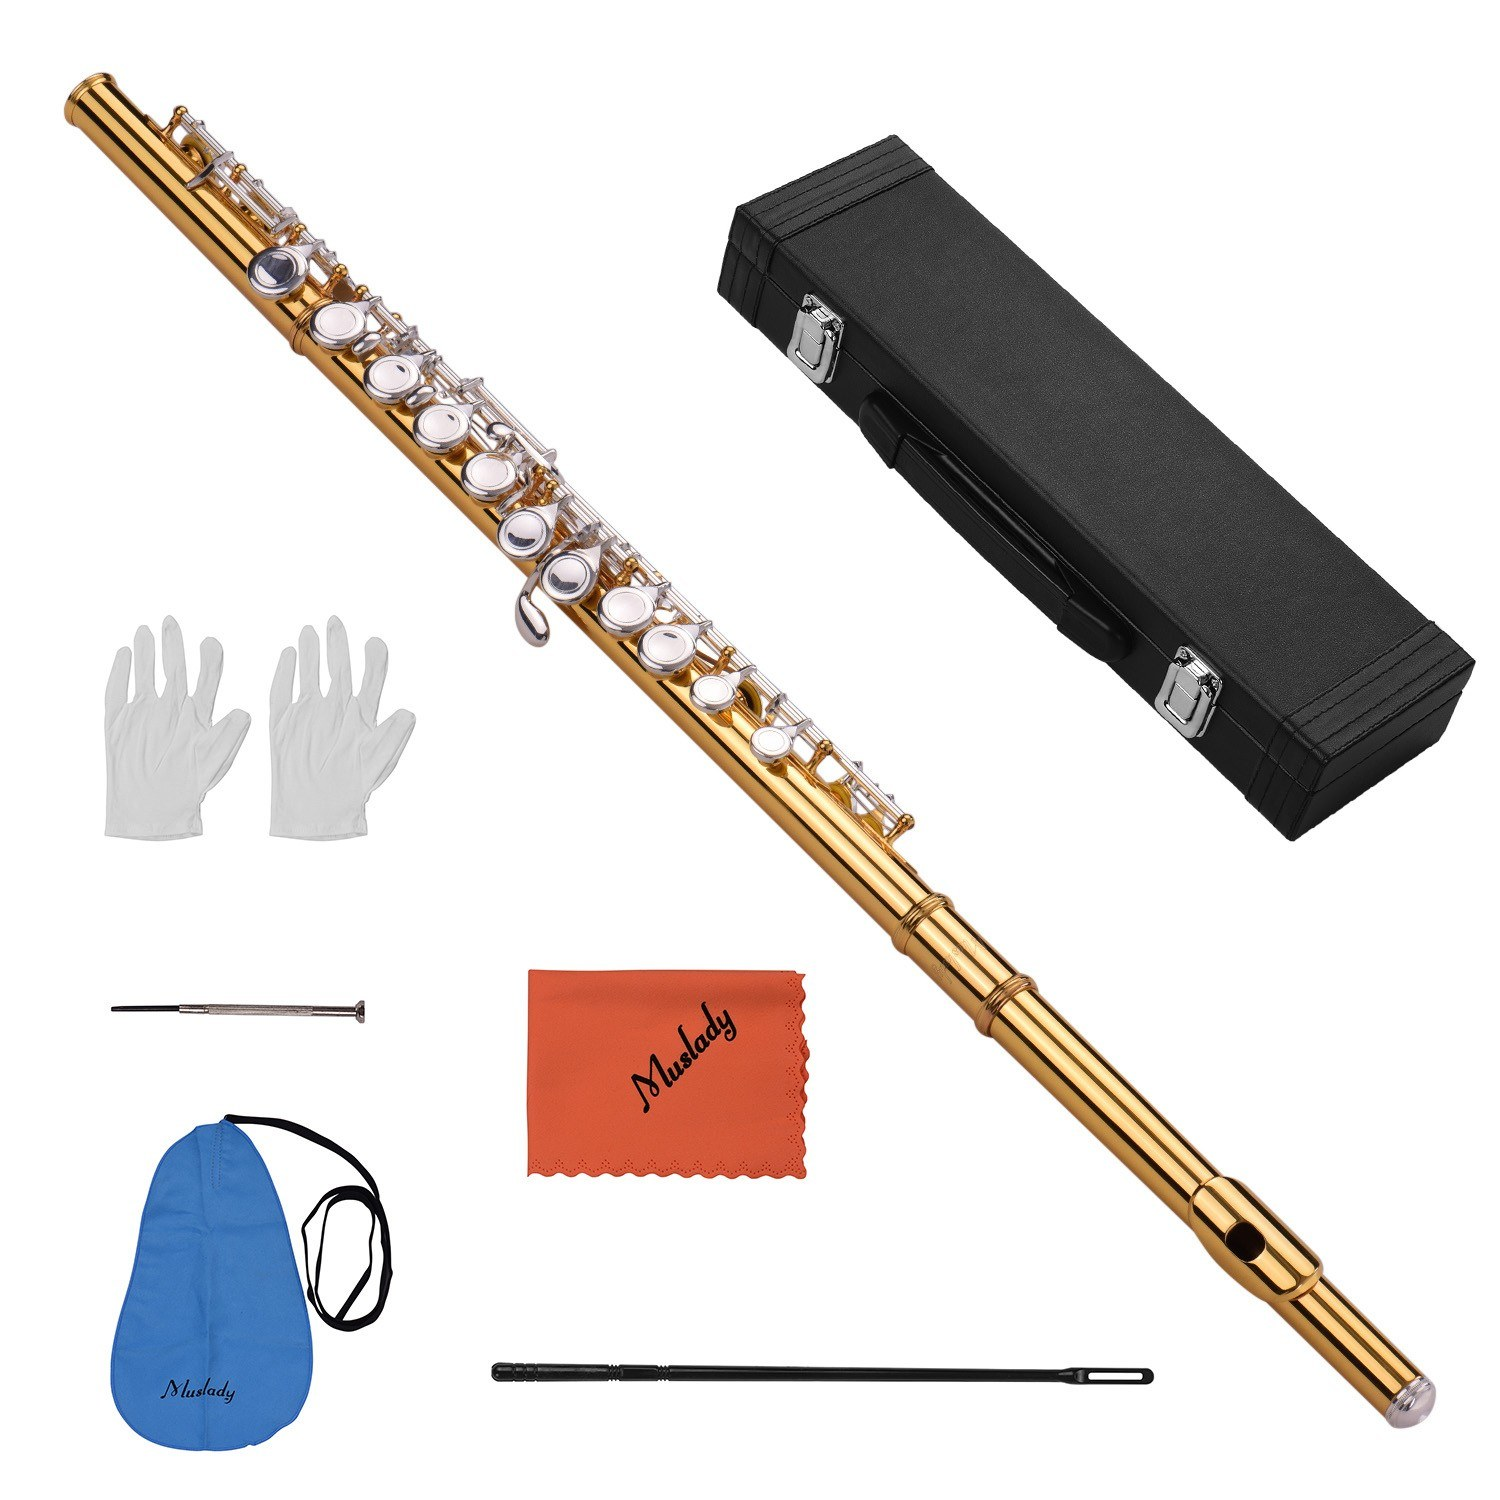 Muslady Professional Closed Hole C Flute Cupronickel Gold-plated Tube 16 Silver-plated Keys Wind Instrument with Padded Carry Case Cleaning Cloth Gloves Mini Screwdriver Cleaning Stick